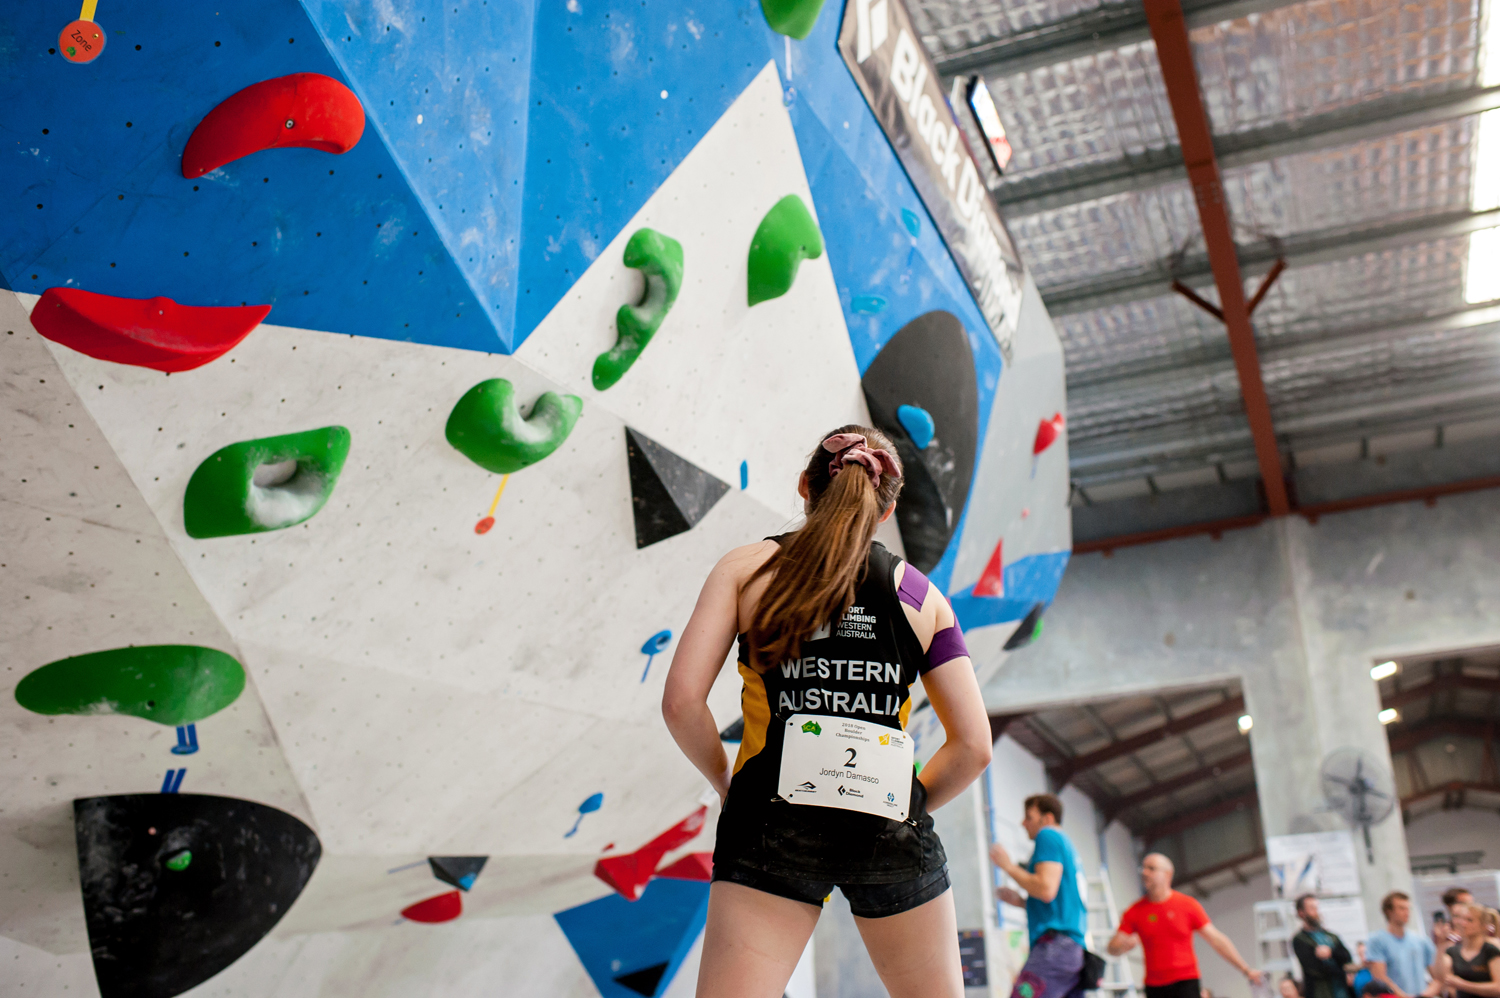 Climbing Rocks Professional Climbing Photography Competition Open Bouldering Championships 2019 (3)